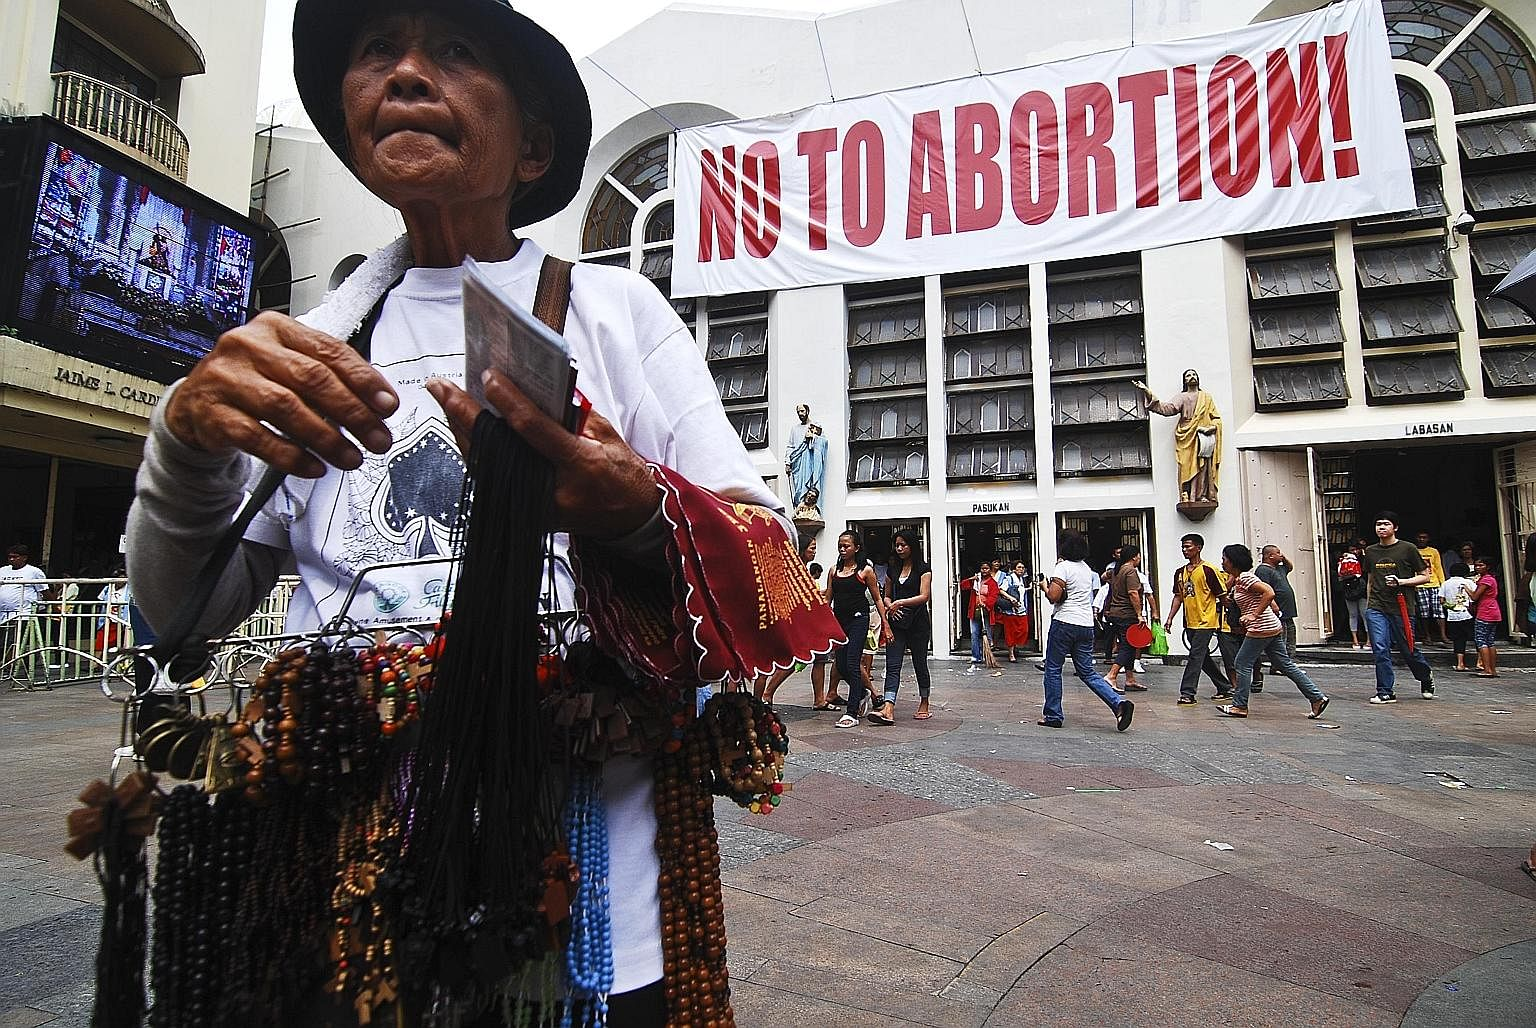 """An anti-abortion sign on the wall of the Minor Basilica of the Black Nazarene in Quiapo, Manila. Vendors outside the church sell a dizzying range of goods, including the banned anti-ulcer drug Cytotec, known to induce miscarriage. That the """"abortion"""